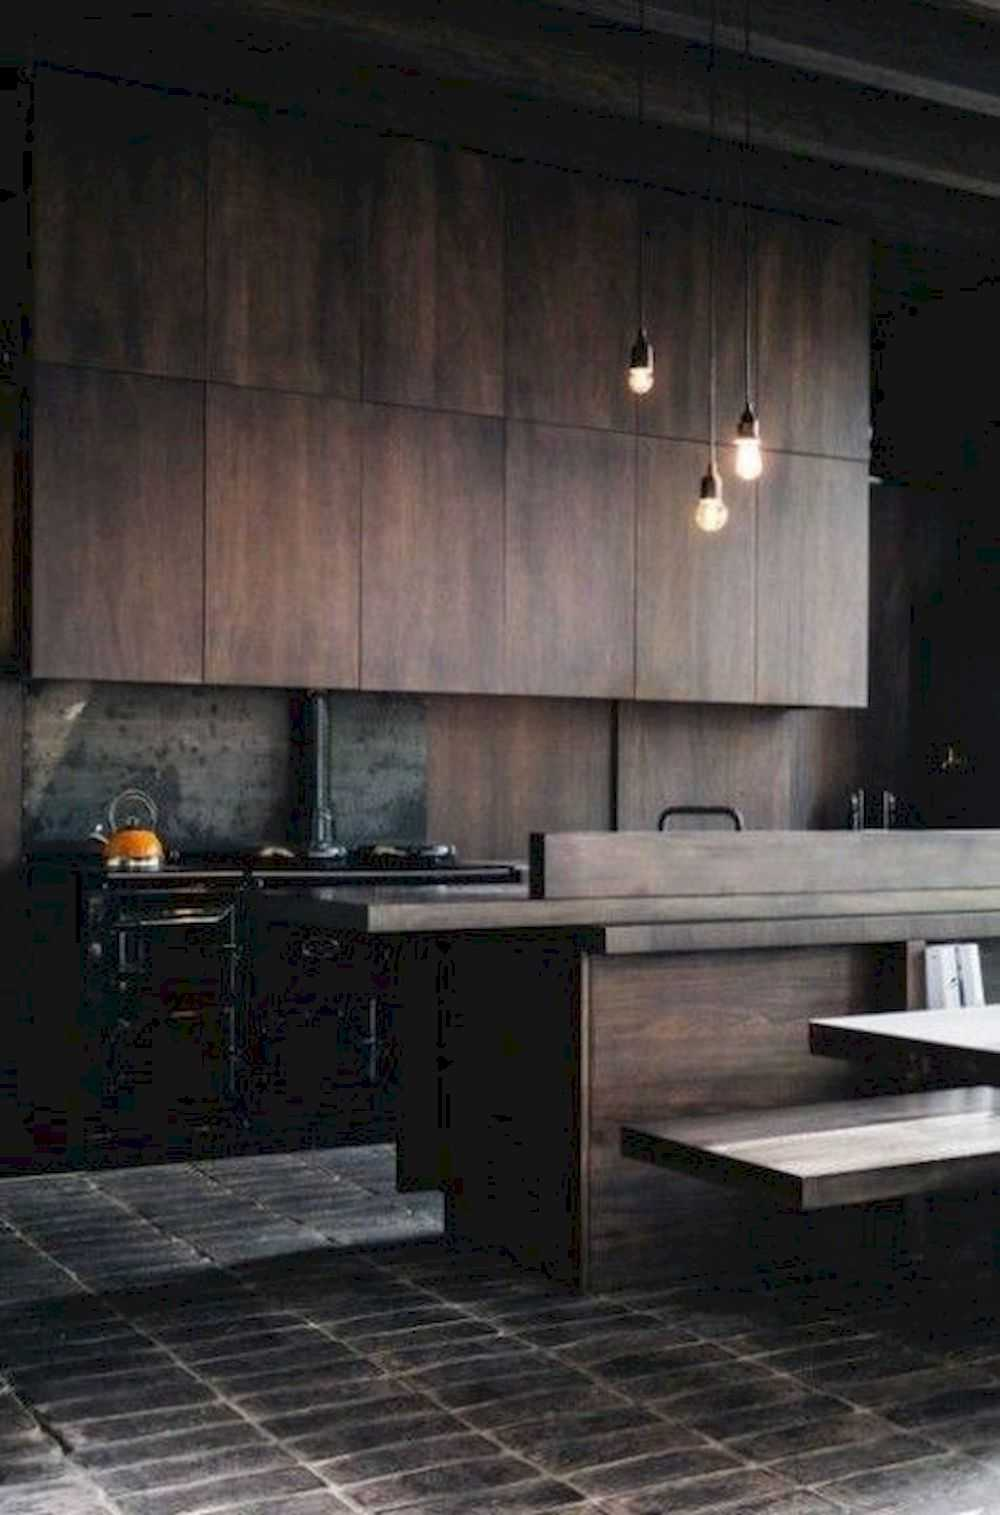 A Moody And Rough Grey Kitchen Of Wood With Metal Countertops A Hearth And Wooden Walls For A Rustic Feel